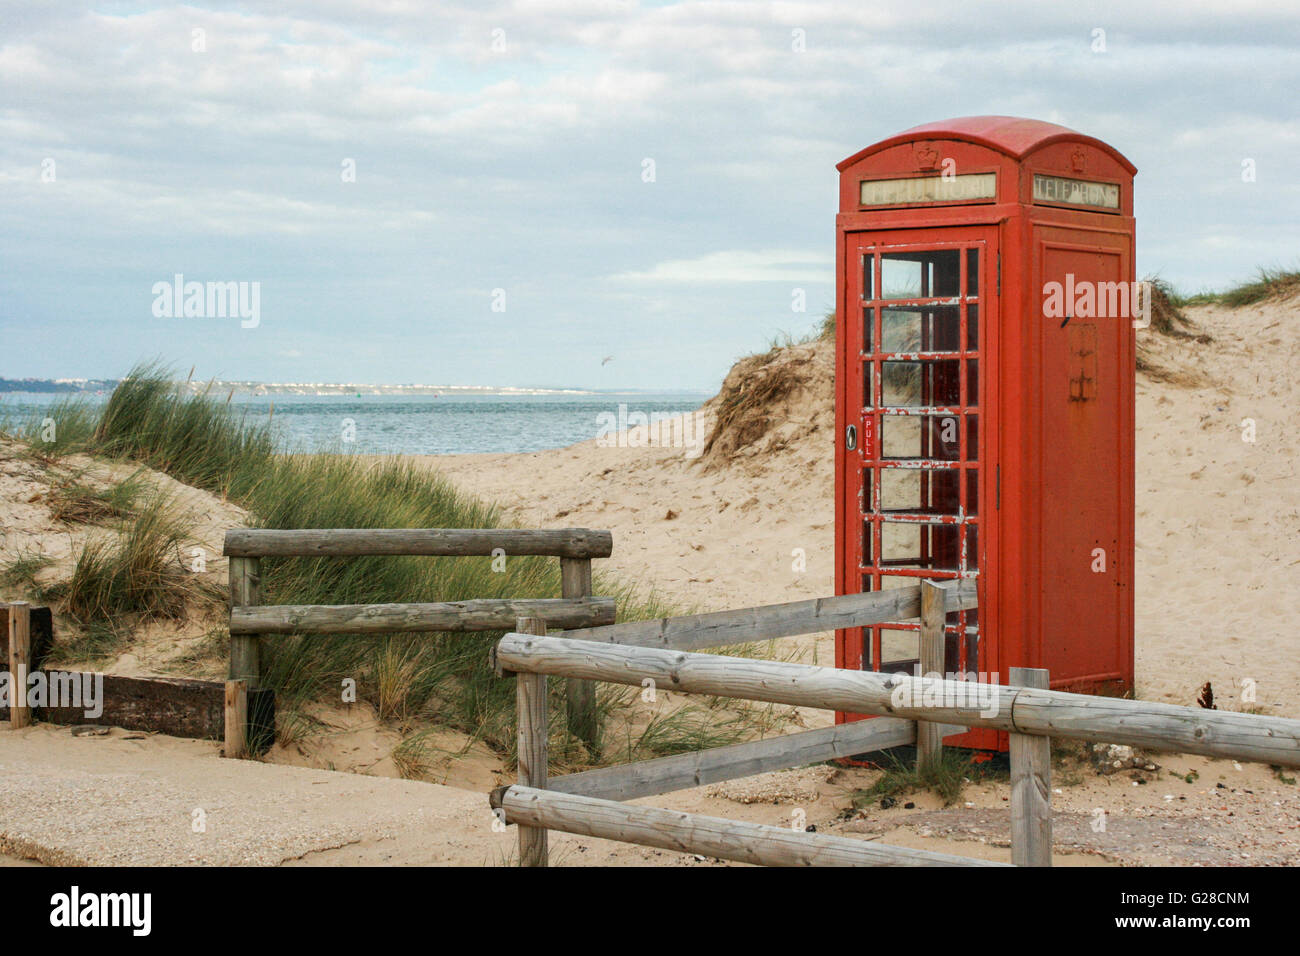 An old red telephone box stands among dunes on the edge of an empty sandy beach under a cloudy sky, UK - Stock Image